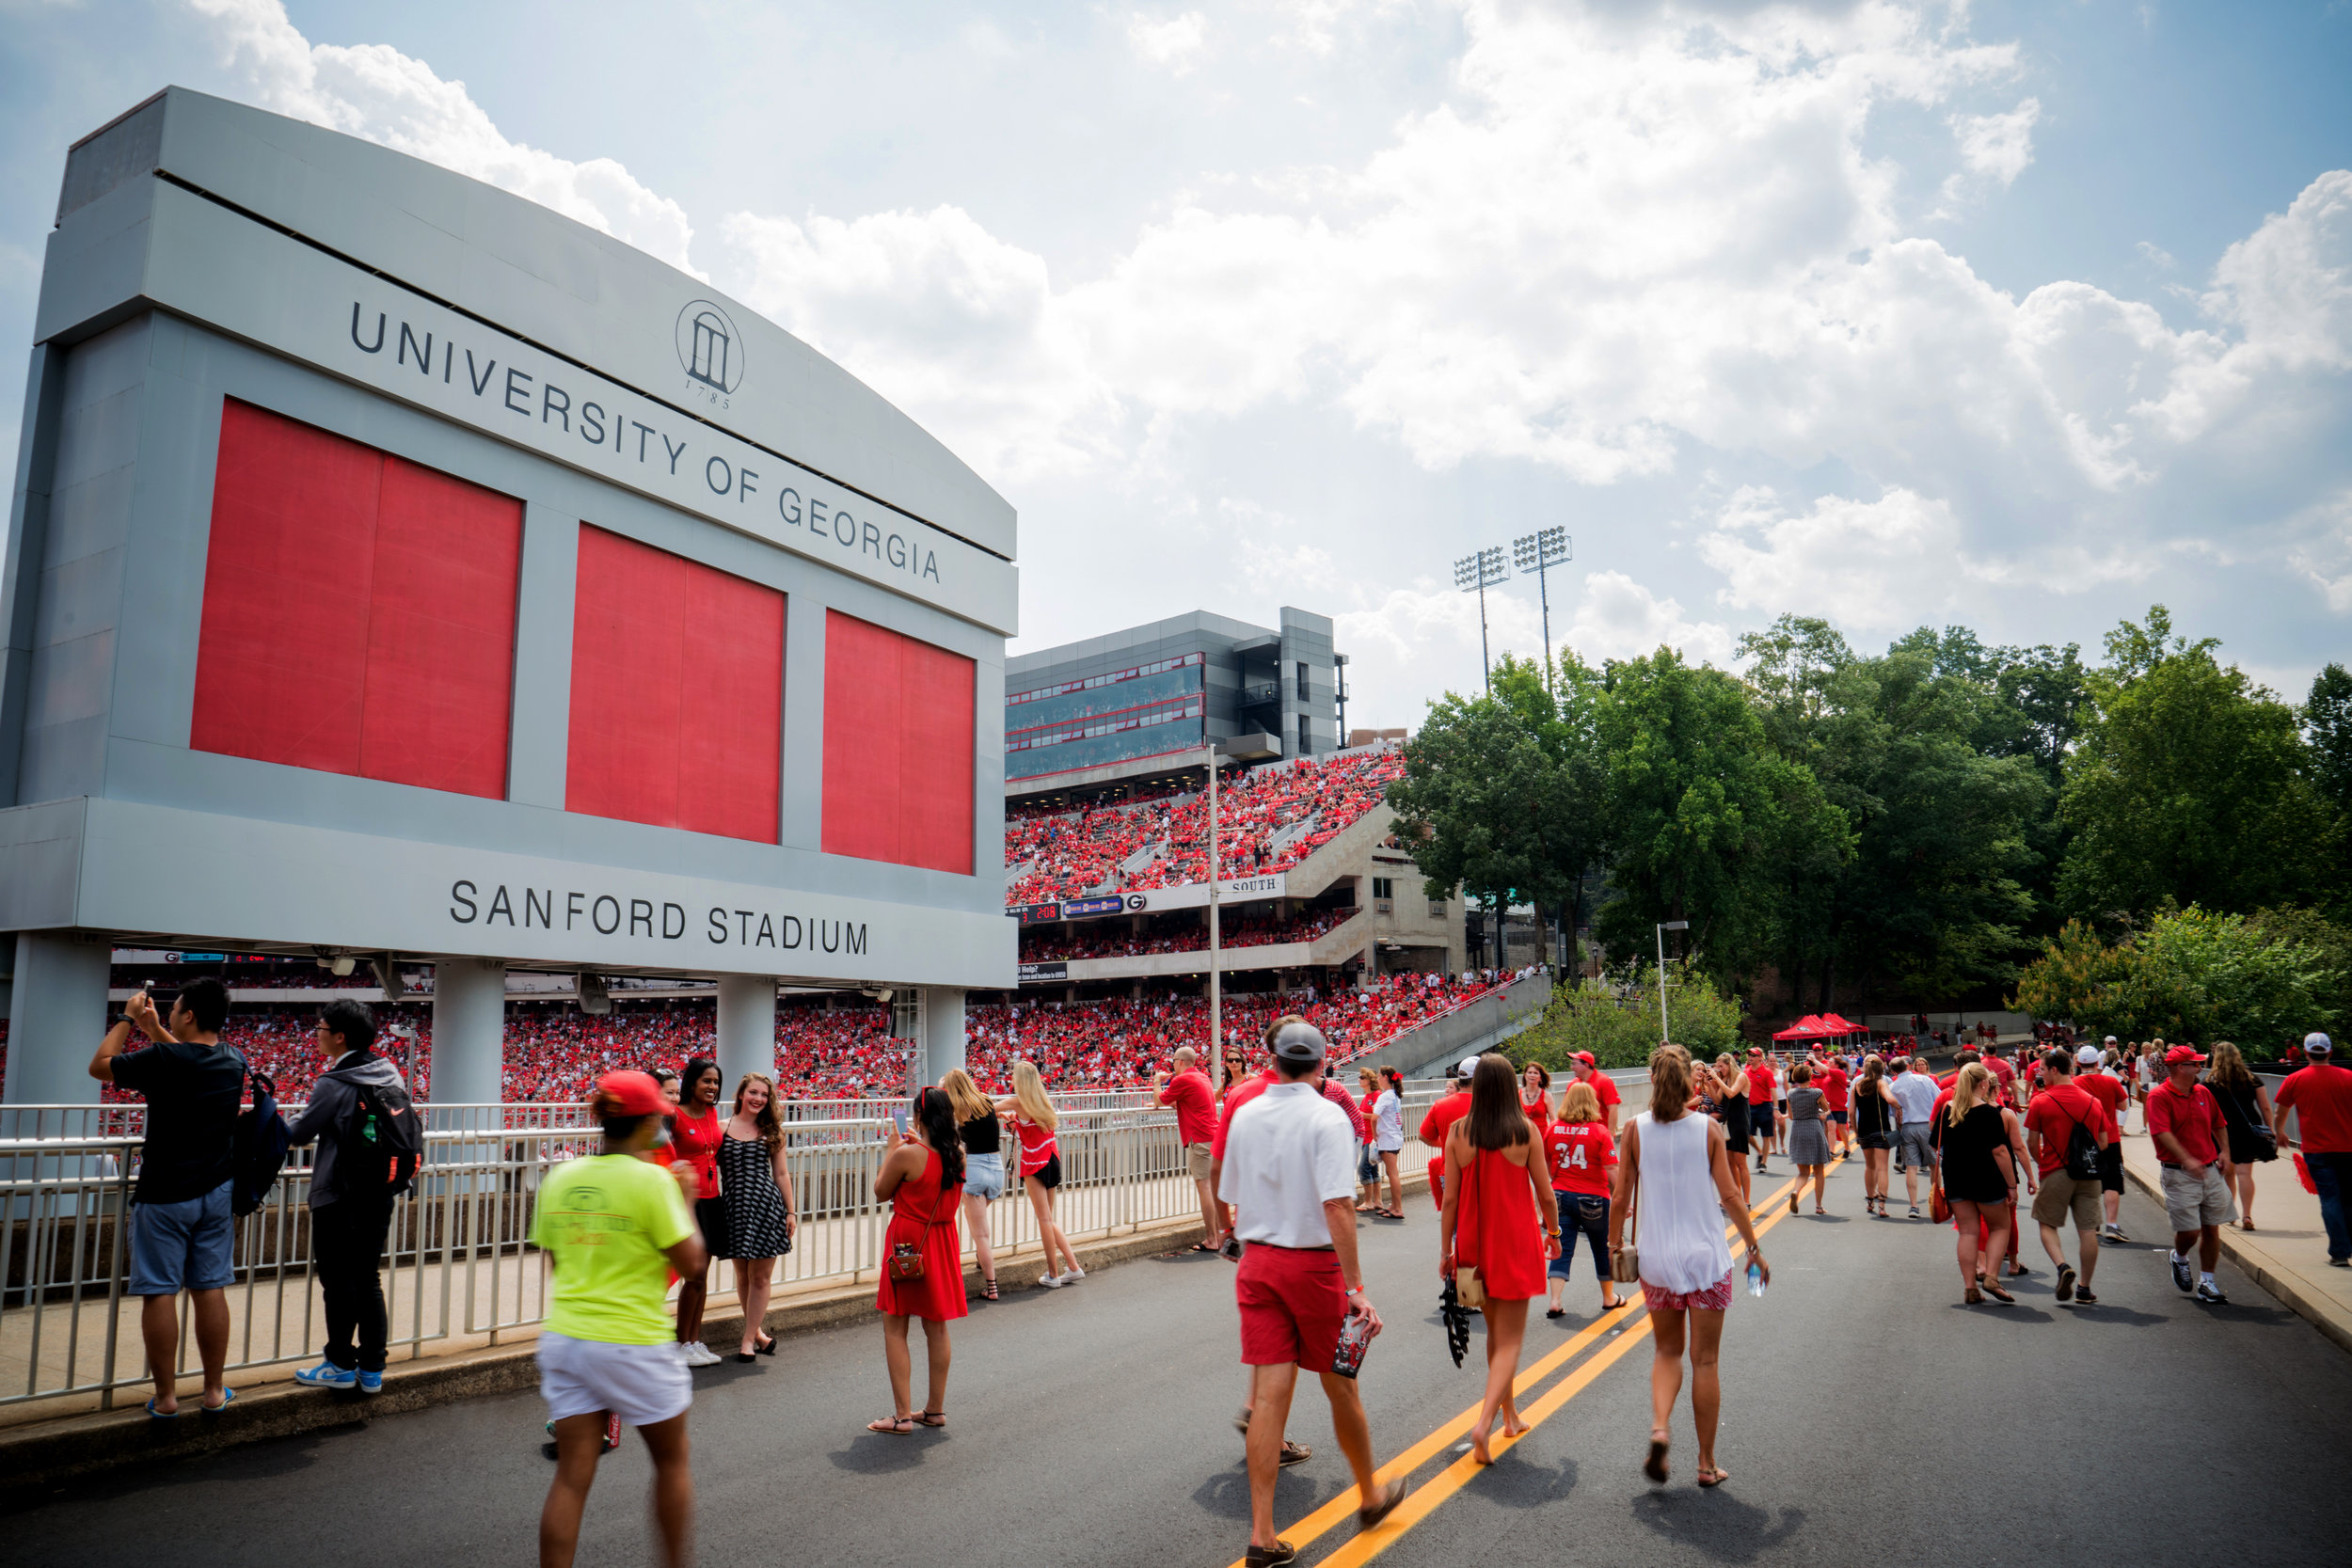 SANFORD STADIUM: University of Georgia